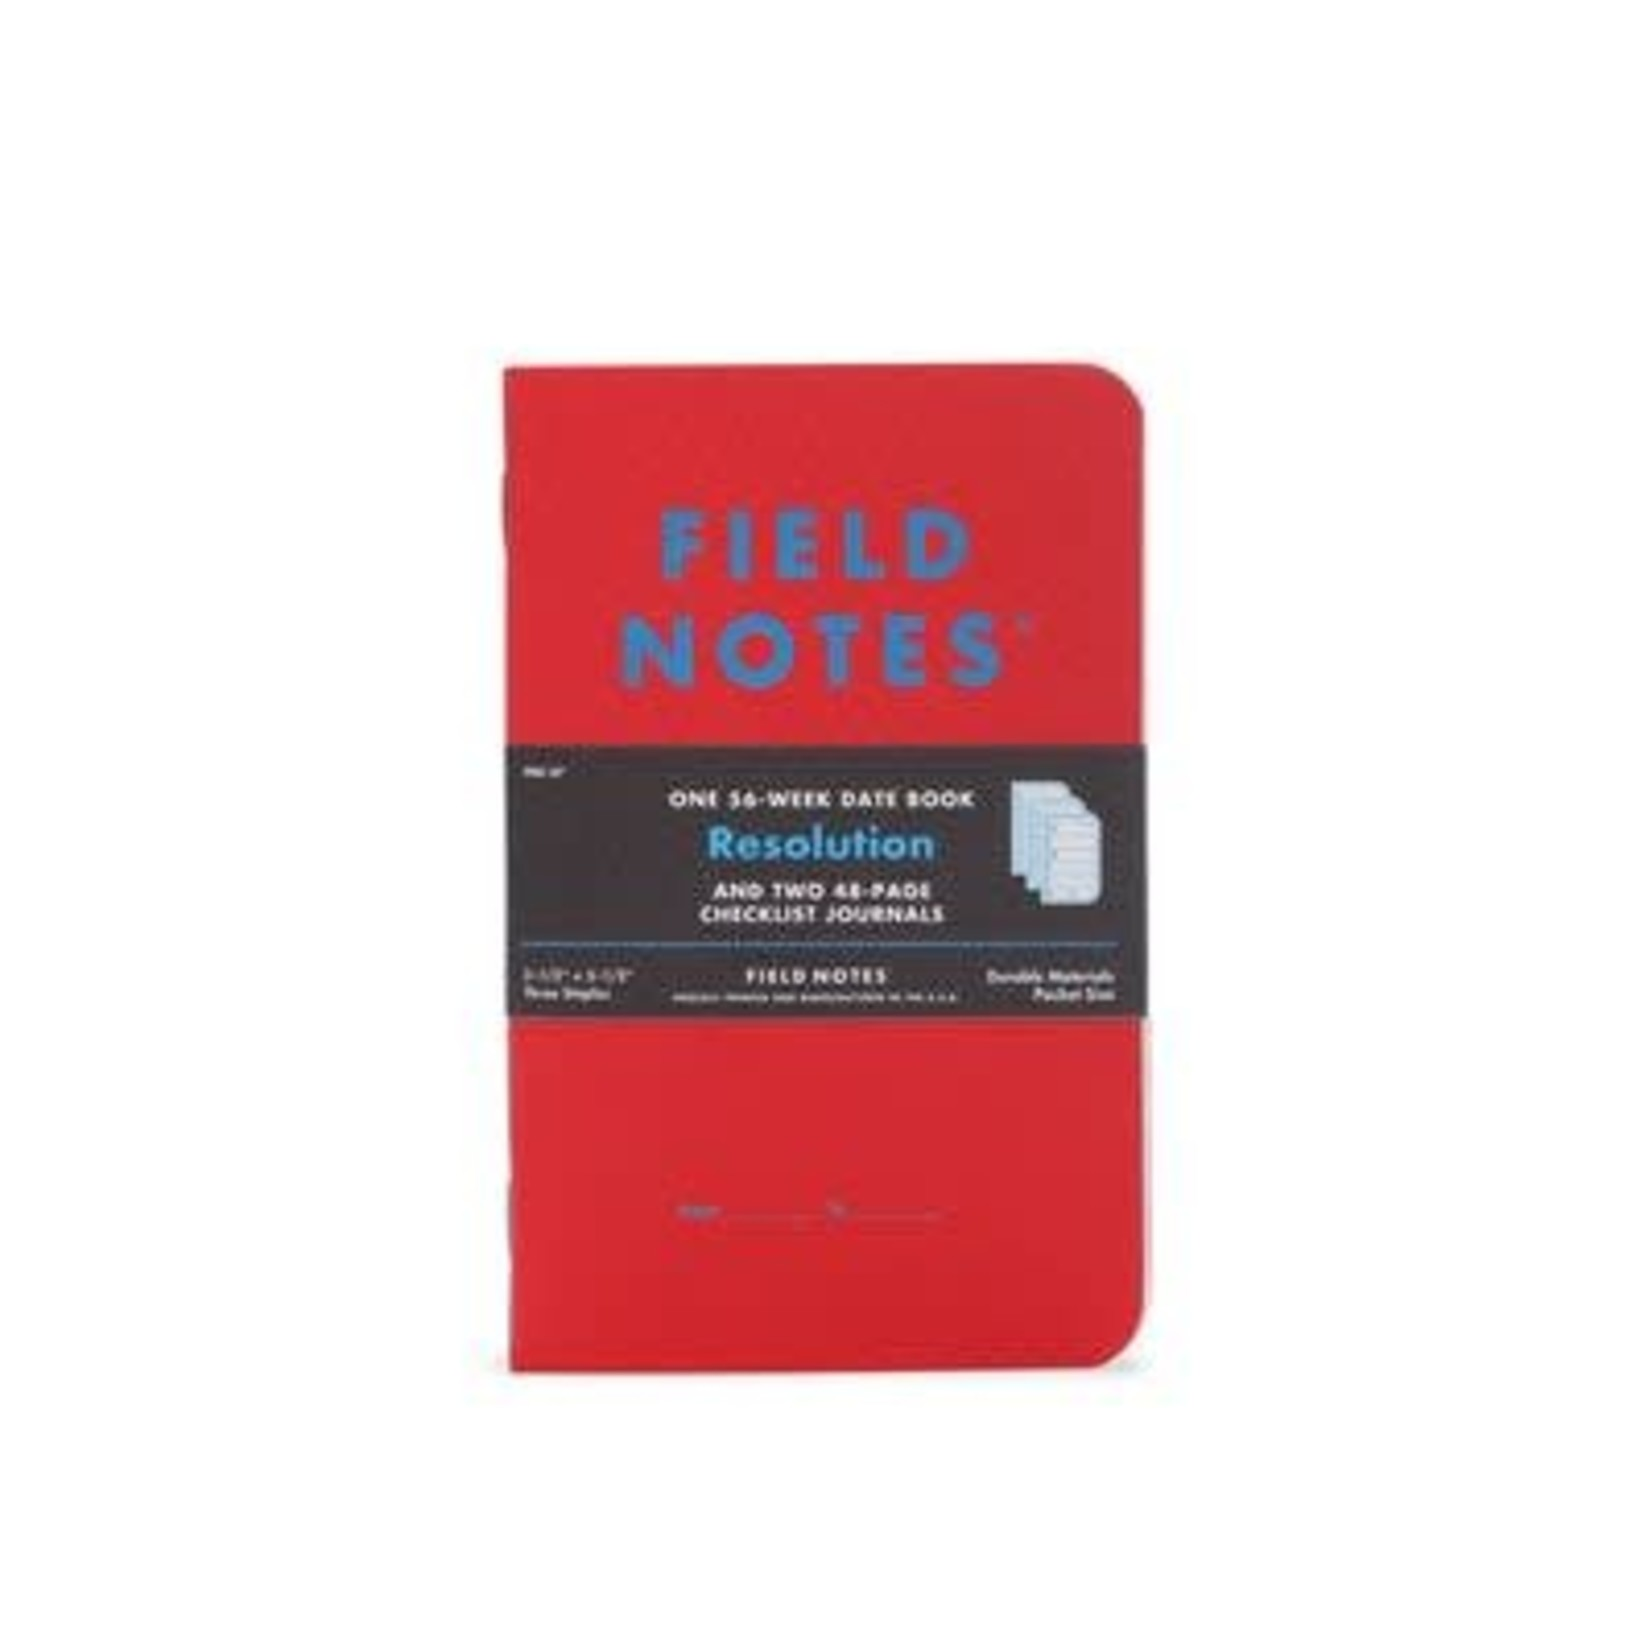 Field Notes Field Notes Resolution